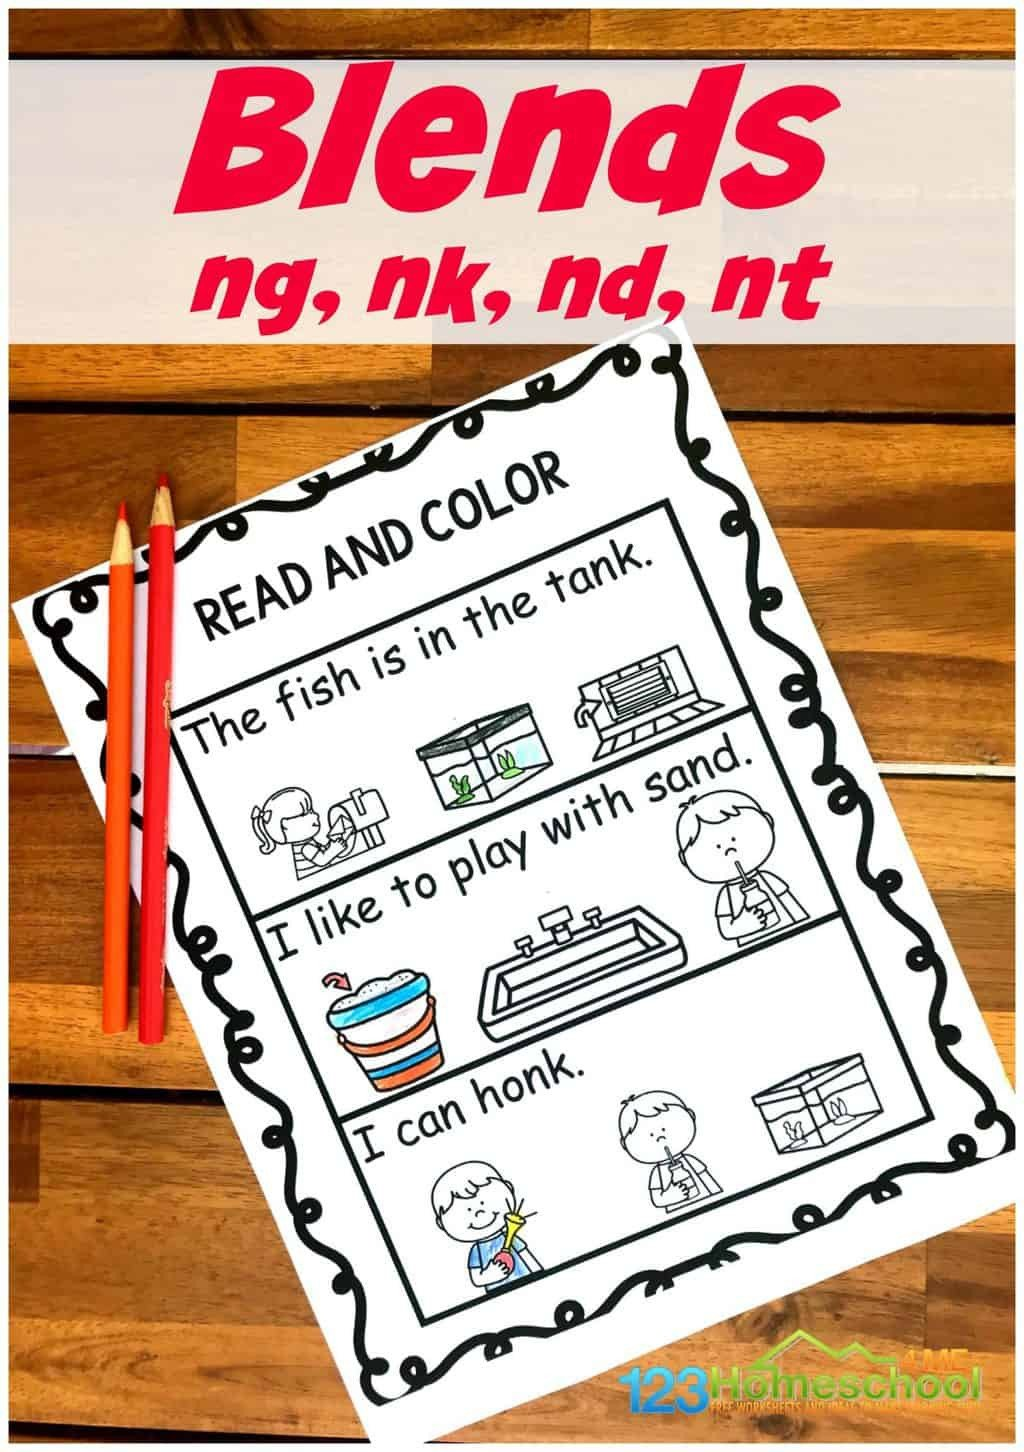 Blends Worksheet for First Grade Free Read & Color Ending Blend Worksheets